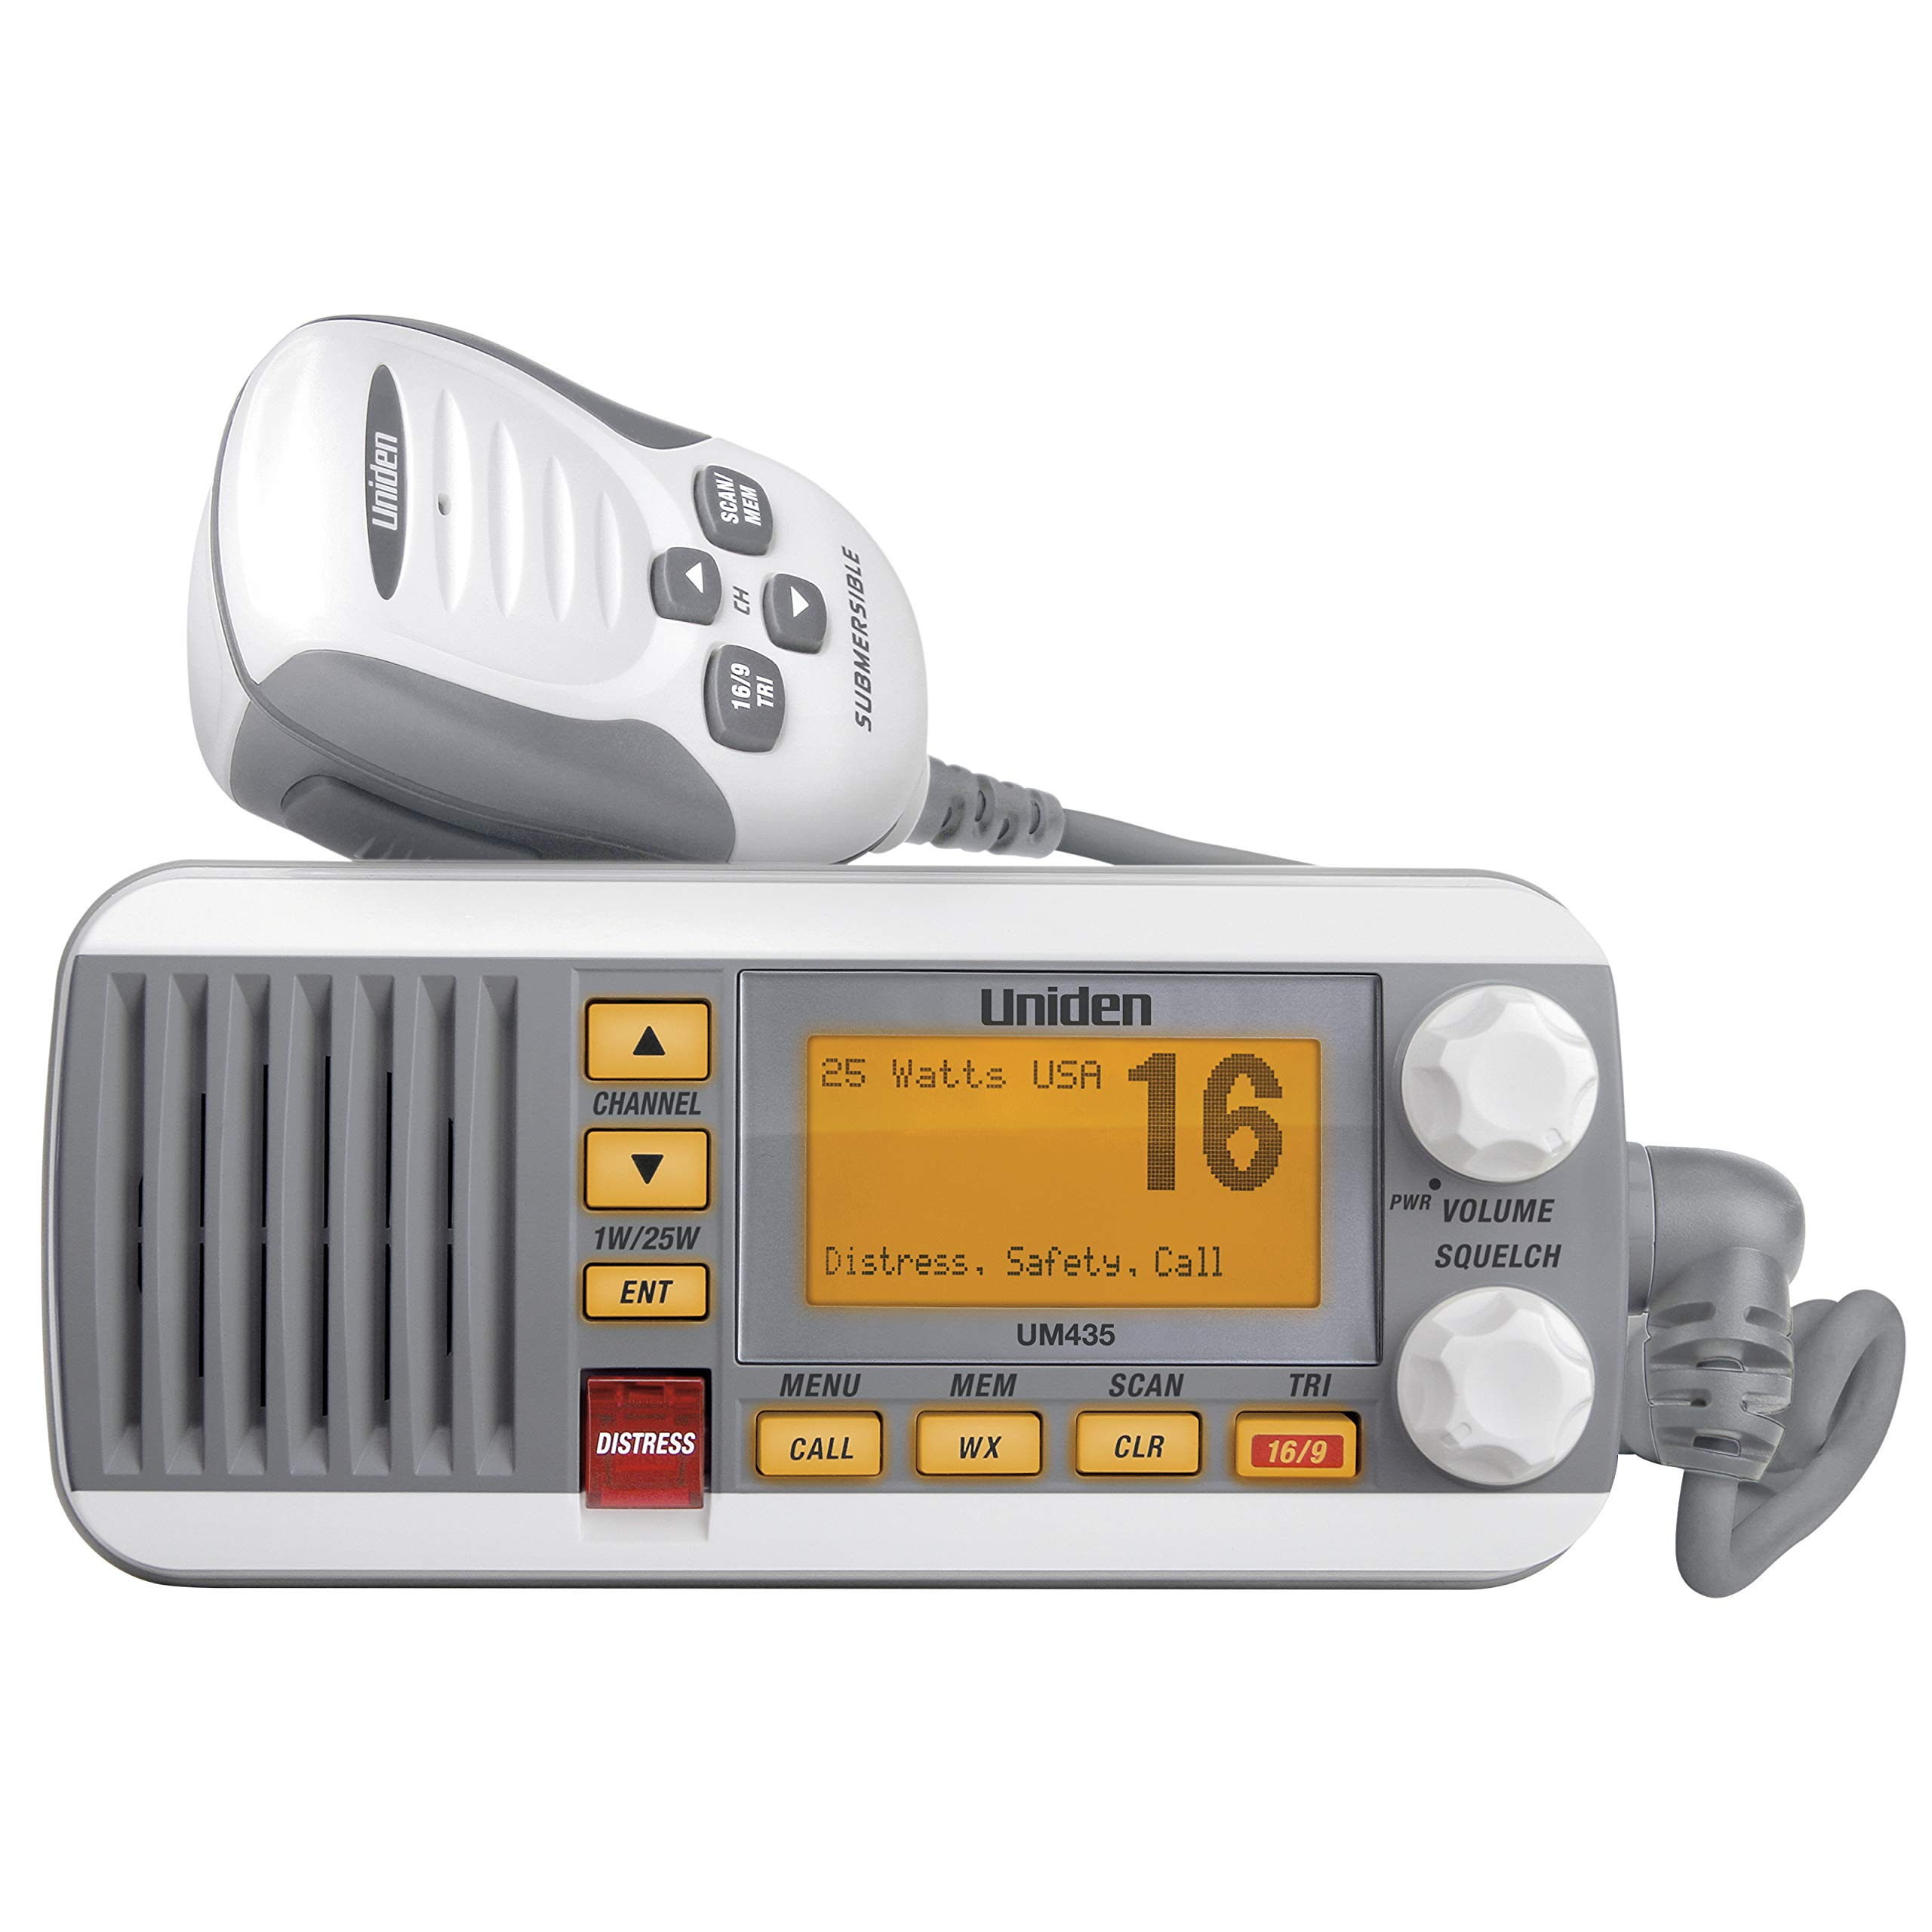 "Uniden UM435 Advanced Fixed Mount Vhf Marine Radio, All Usa/International/Canadian Marine Channels Including New 4-Digit, CDn ""B"" Channels, 1 Watt/25 Watt Power, Waterproof IPX8 Submersible, White"